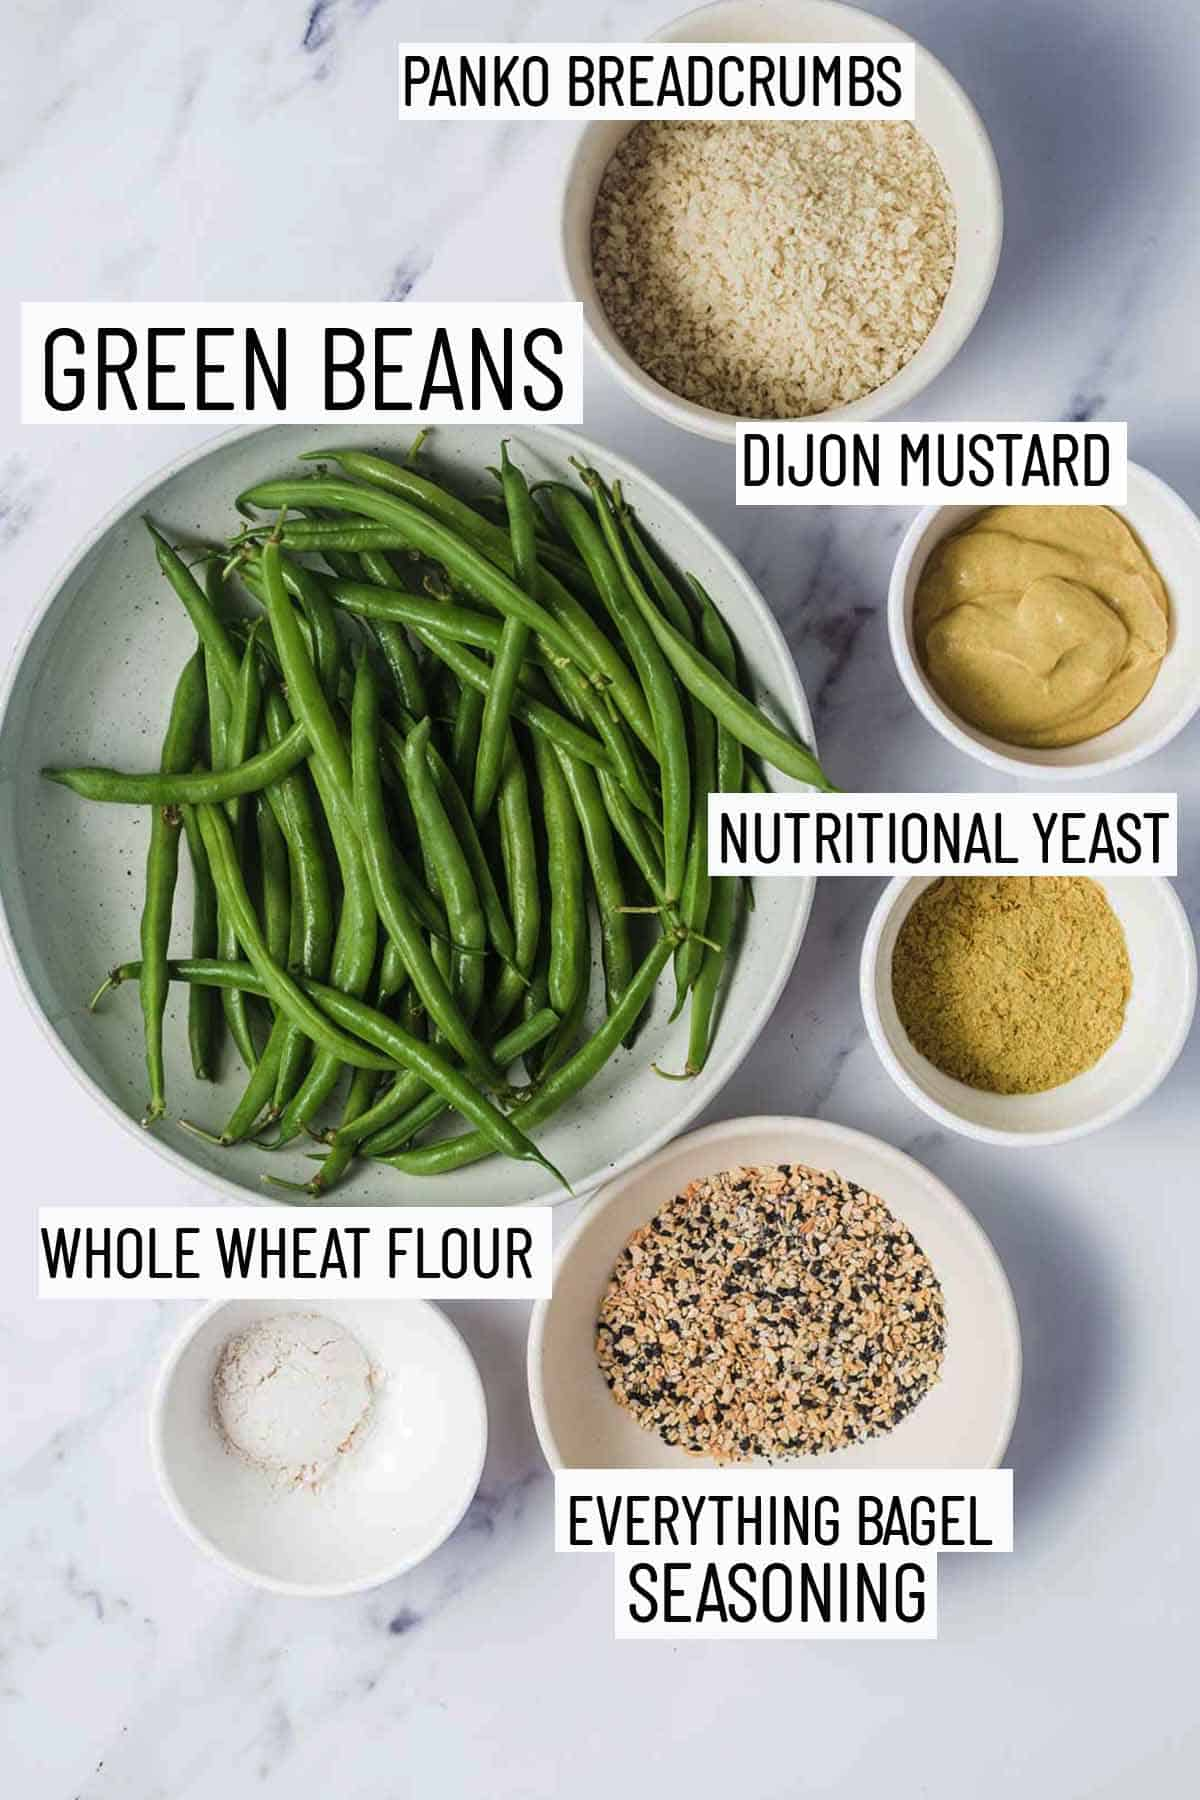 Flat lay image of portioned recipe ingredients including green beans, panko breadcrumbs, dijon mustard, nutritional yeast, everything bagel seasoning, and whole wheat flour.